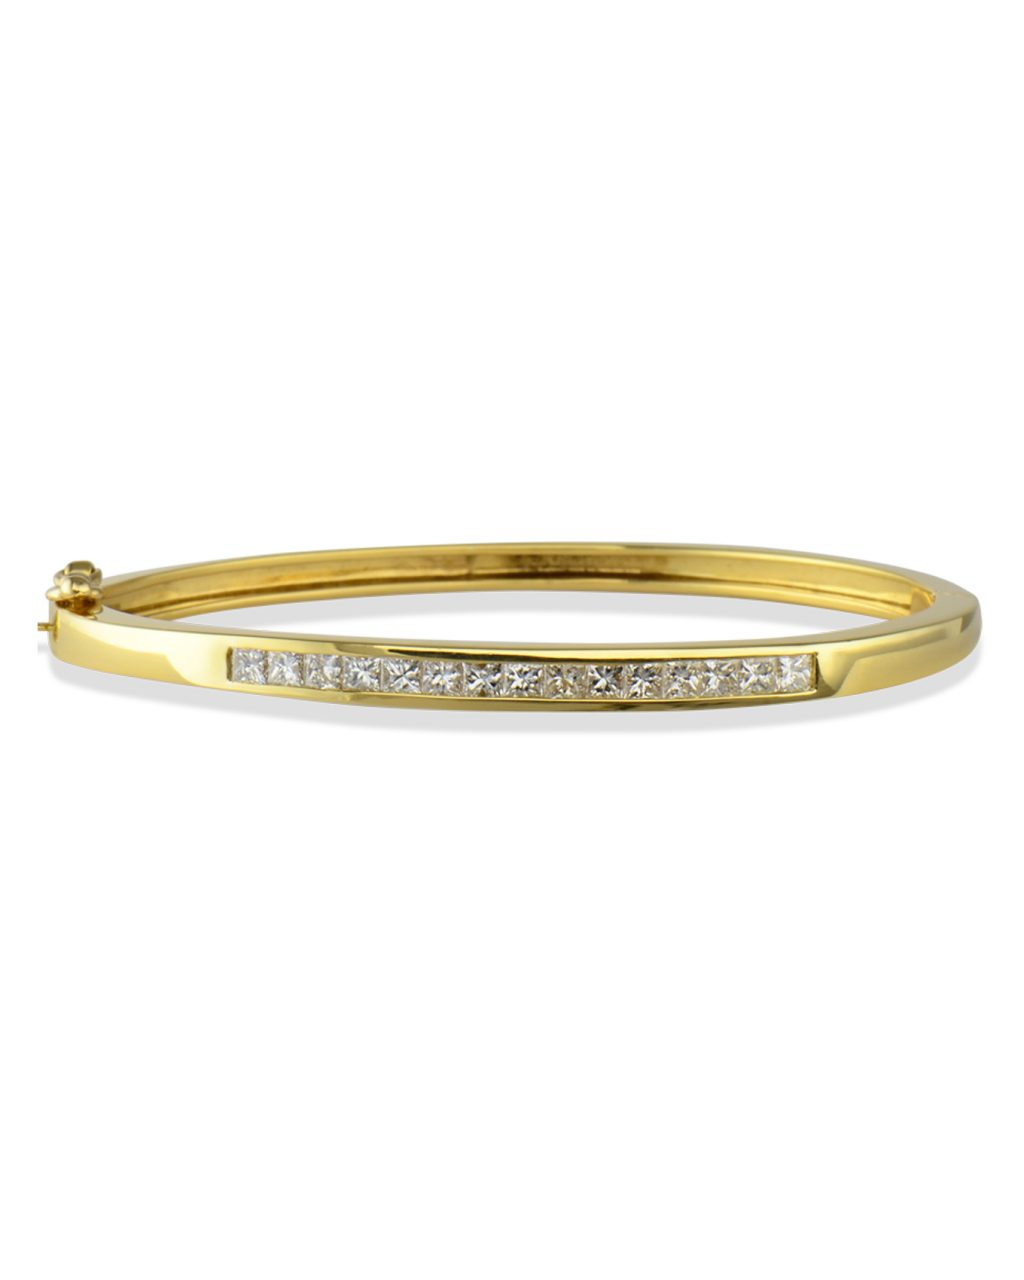 Diamond bangle bracelet with hinge